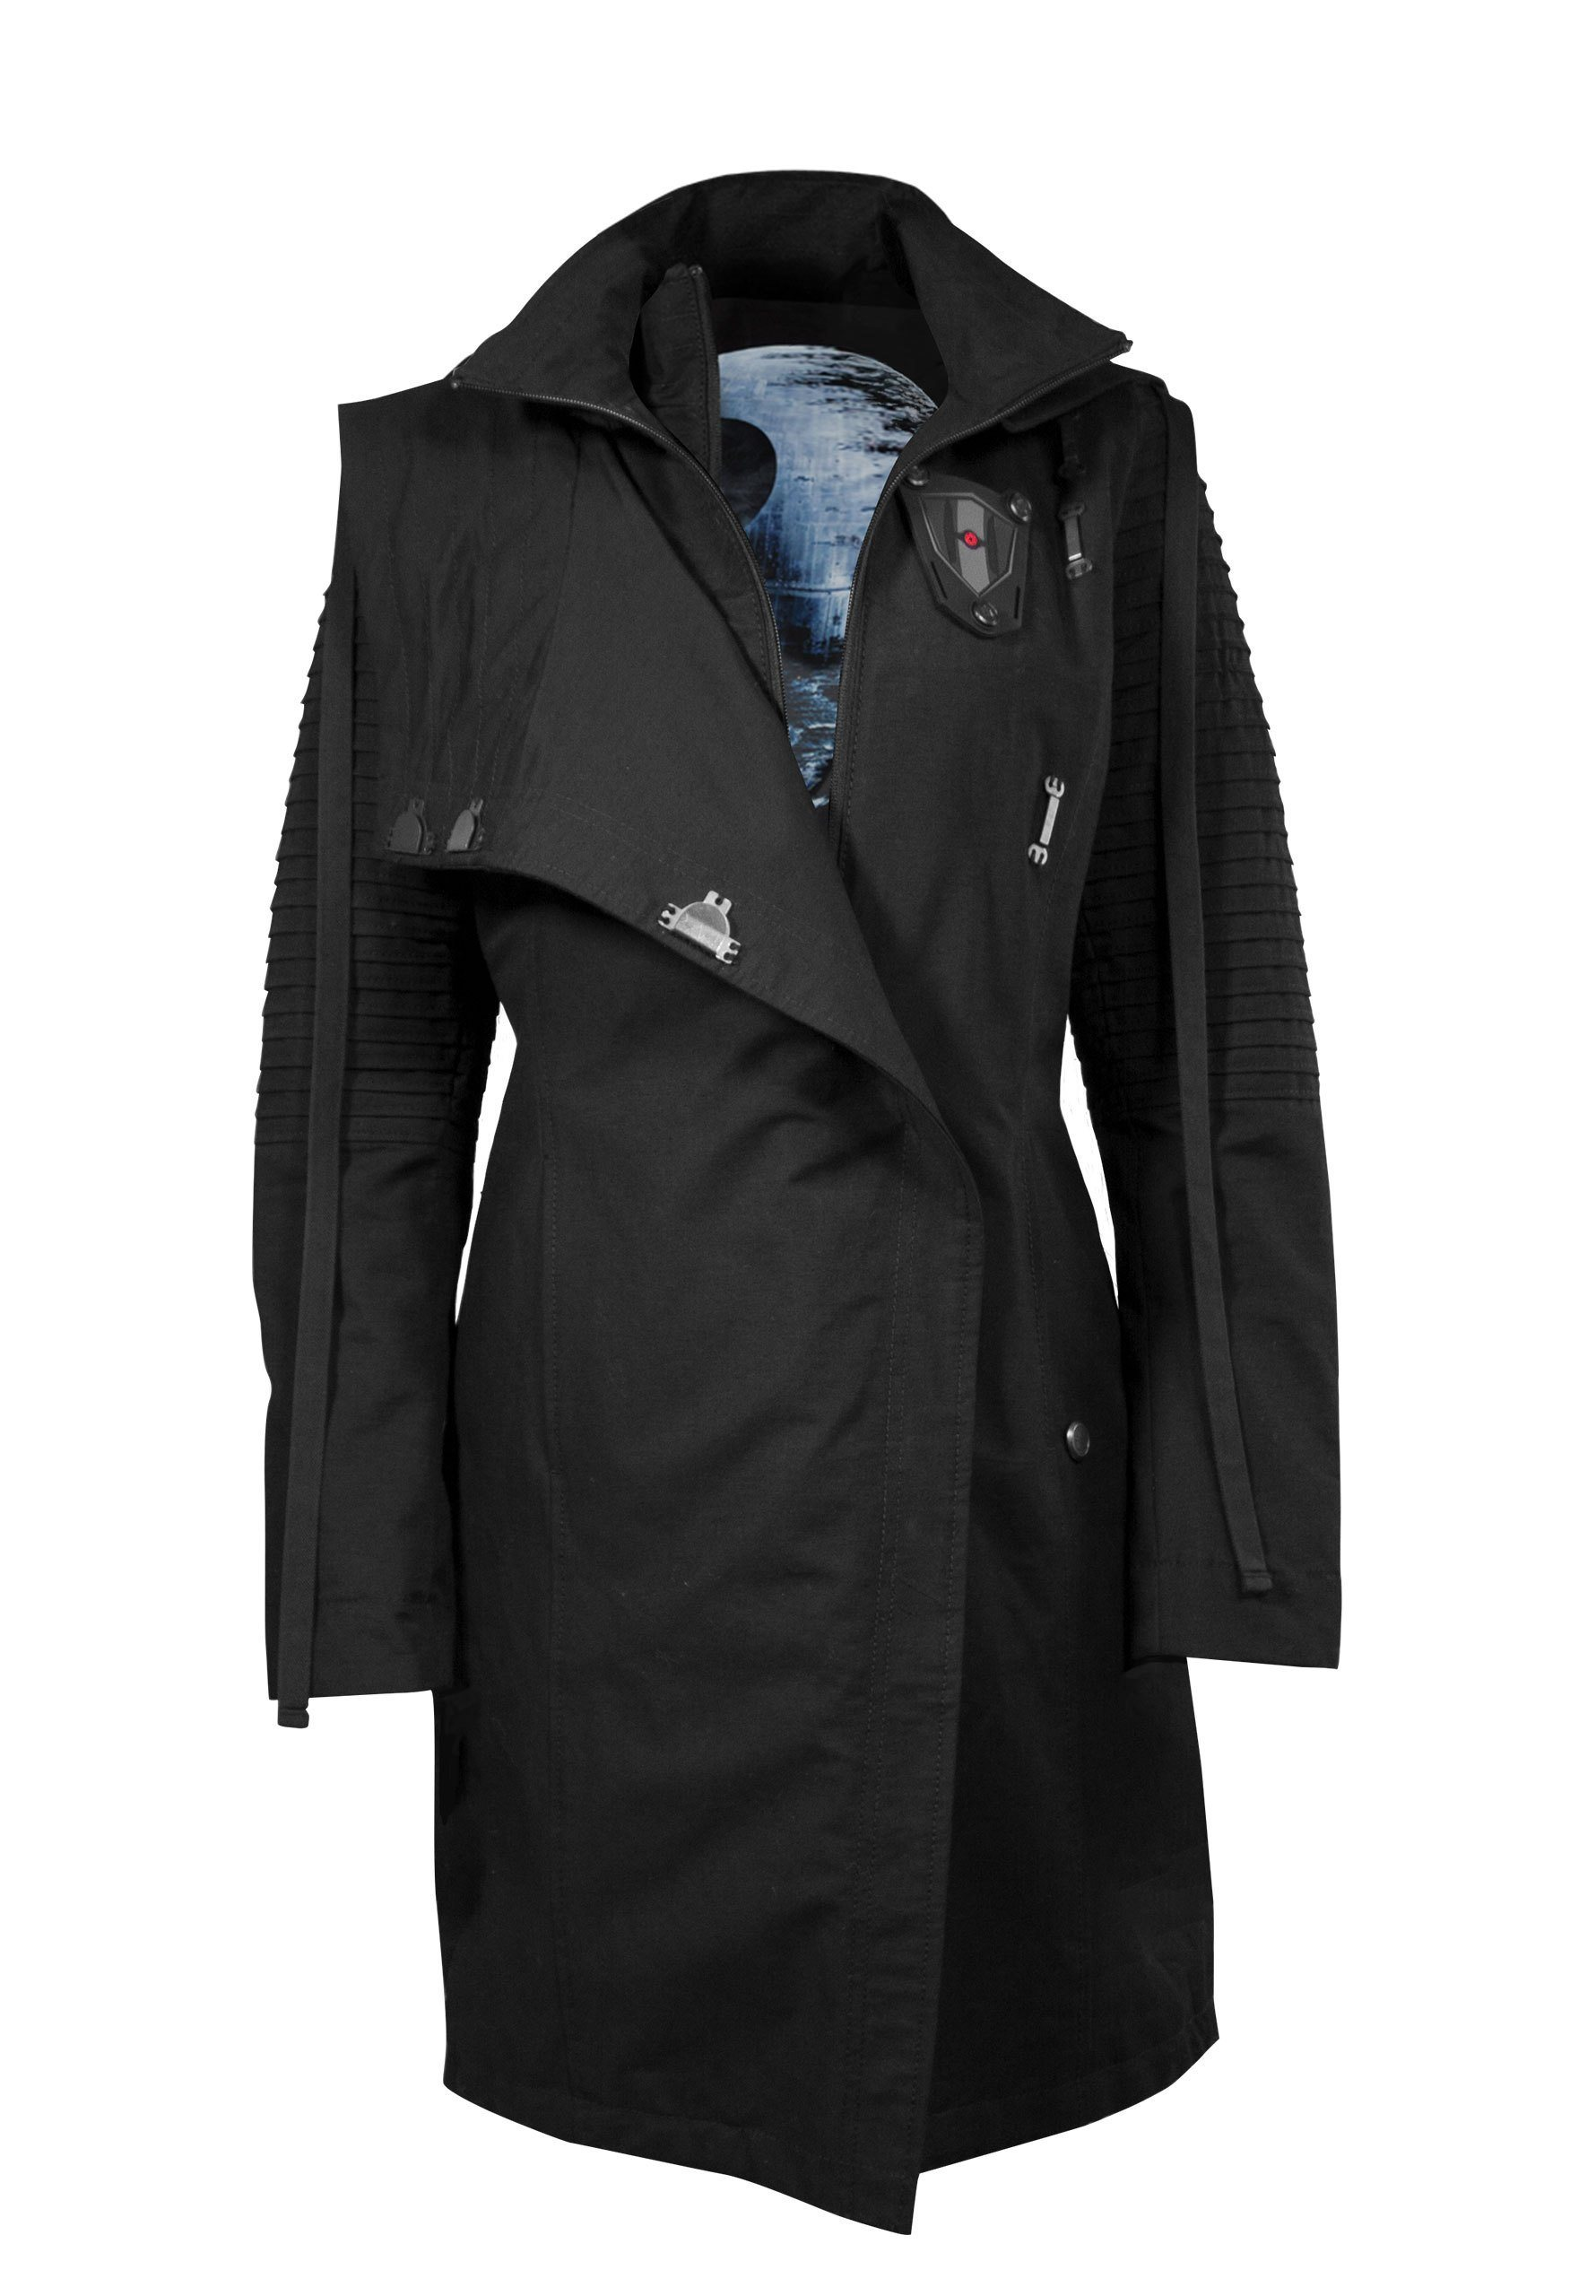 Musterbrand Trenchcoat »Sith Lady Limited Edition« Star Wars Kollektion | Bekleidung > Mäntel > Trenchcoats | Musterbrand